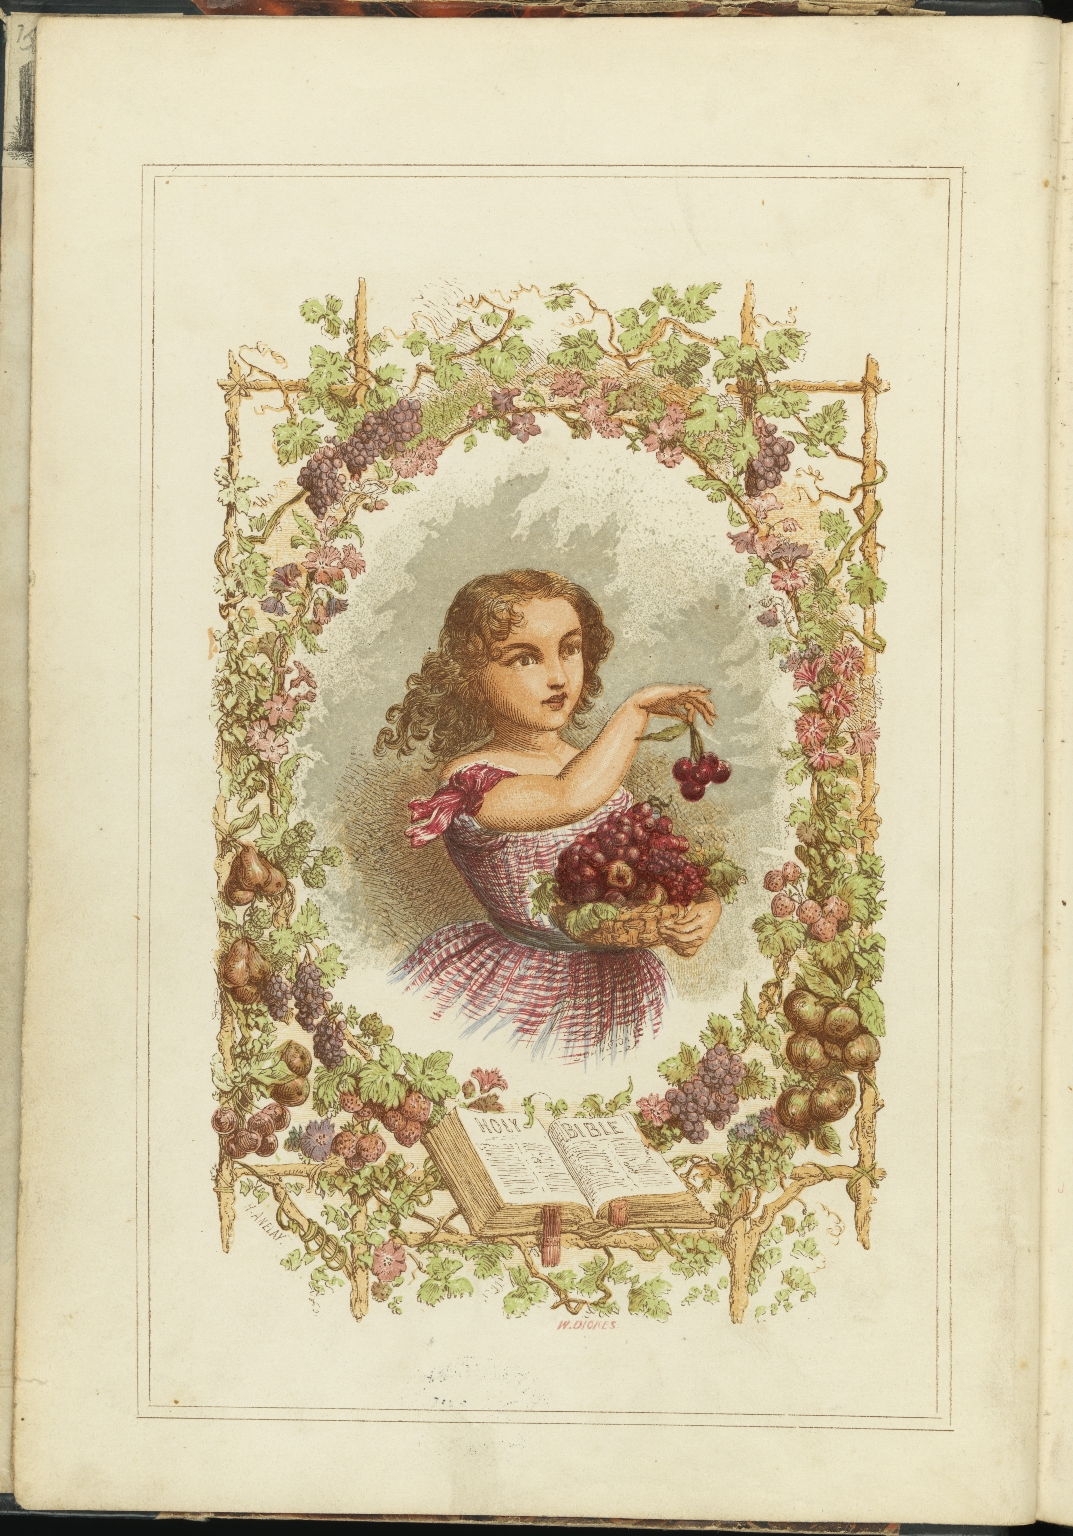 Illustrated Songs and Hymns, 1st Frontispiece